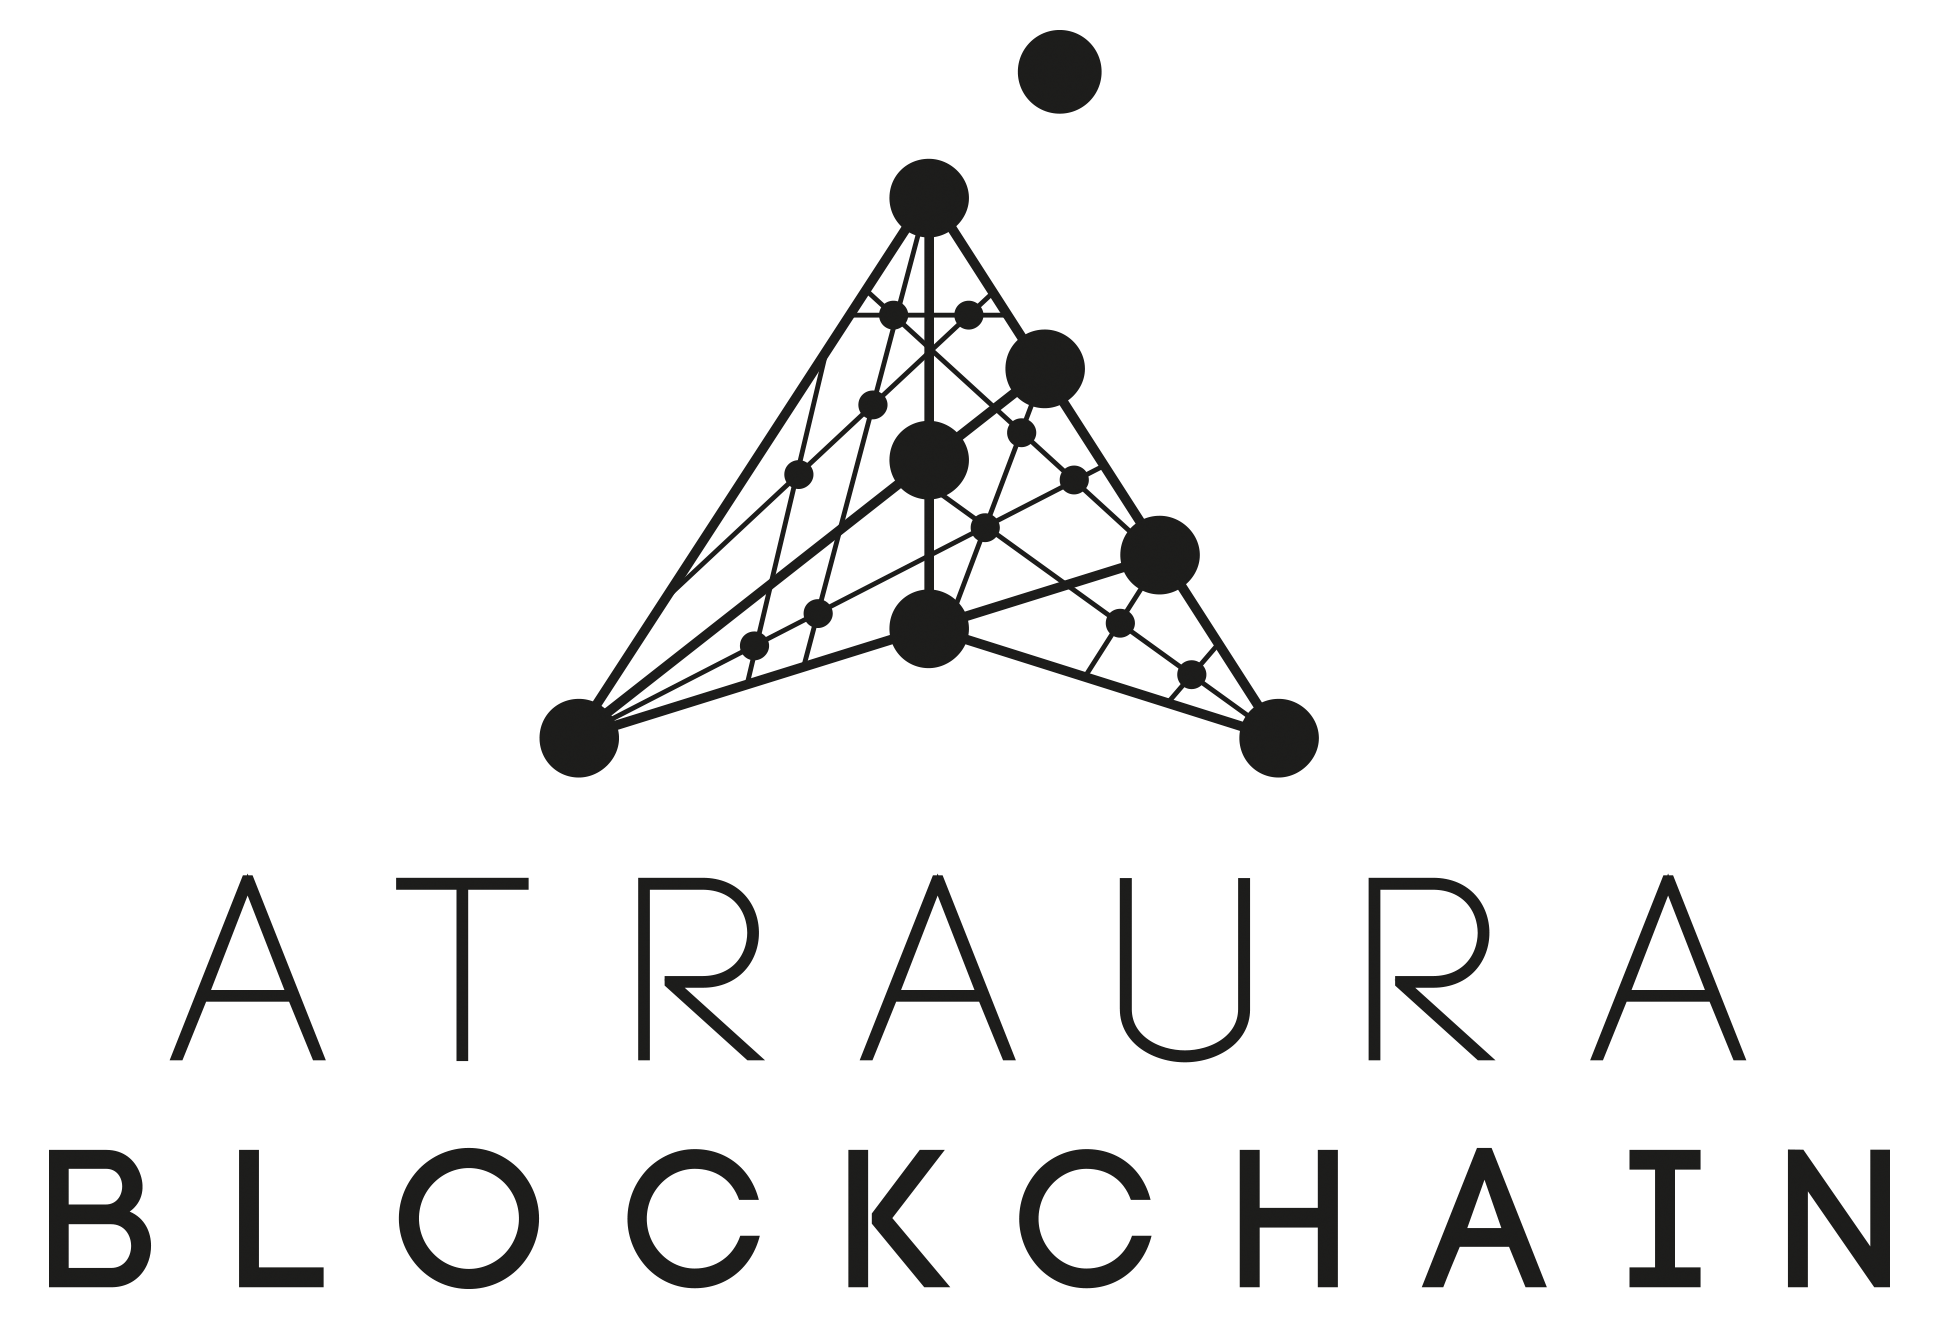 atraura blockchain logo